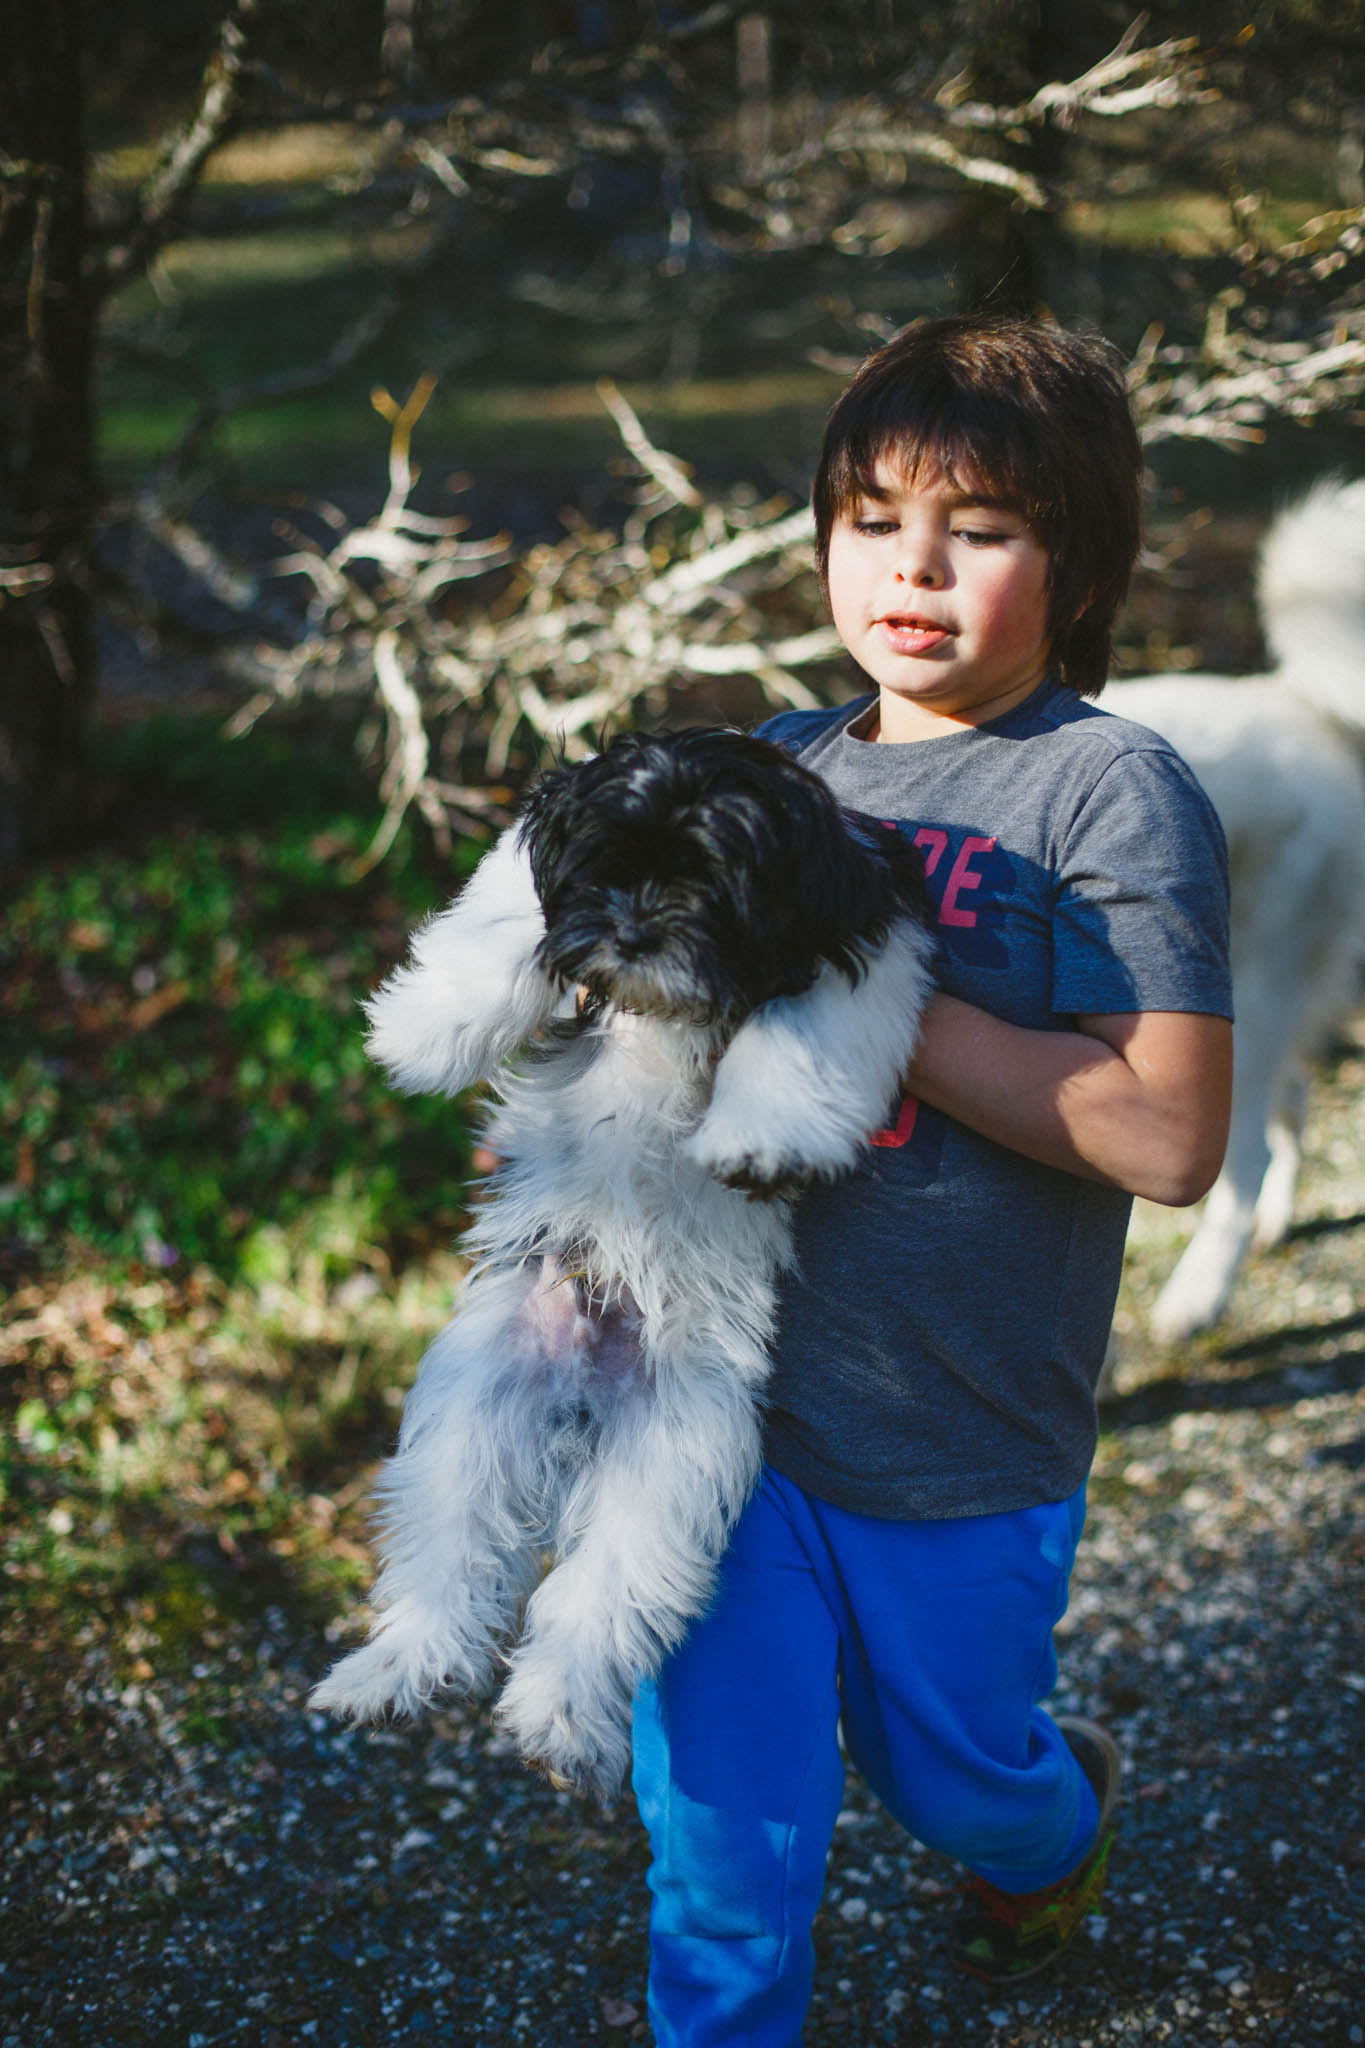 Wild children photography with a Lhasa Apso in the woods of Northern California